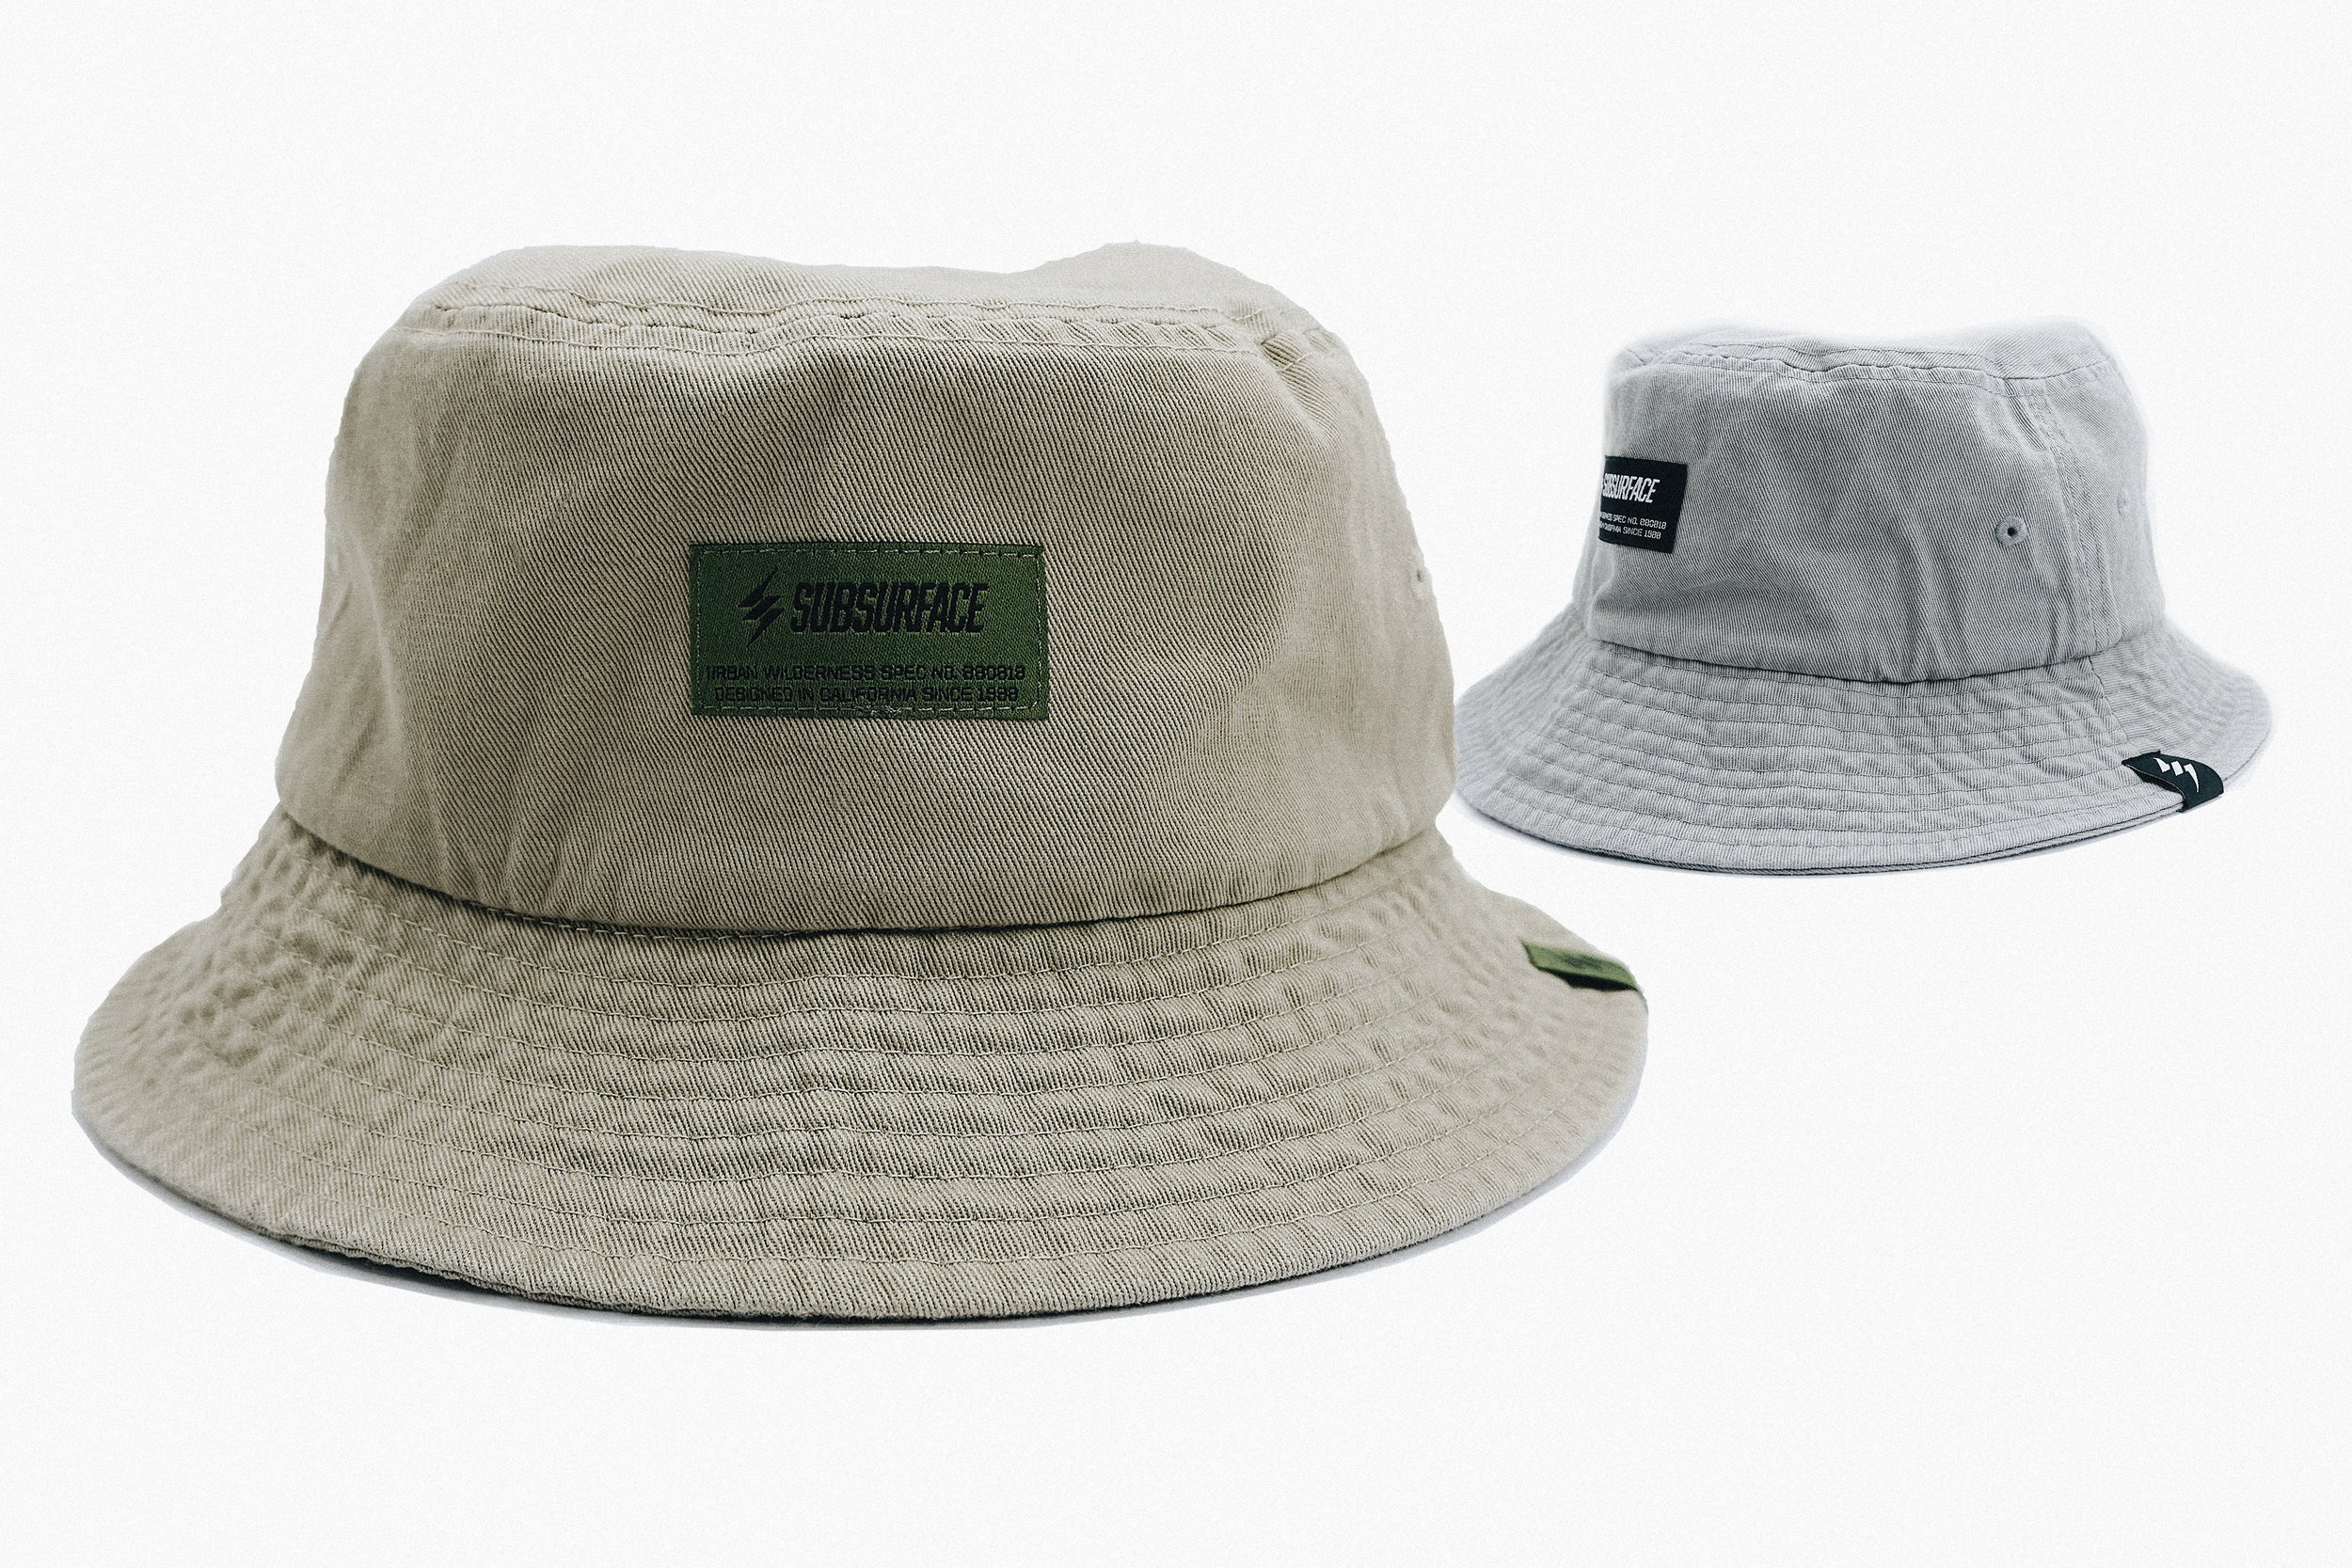 The Battalion Bucket Hat - [SKU #SUB0009] - Solid construction with Signature Woven Labels / Unstructured Crown / Embroidered Eyelets for Breathability / 100% Cotton / One Size Fits All